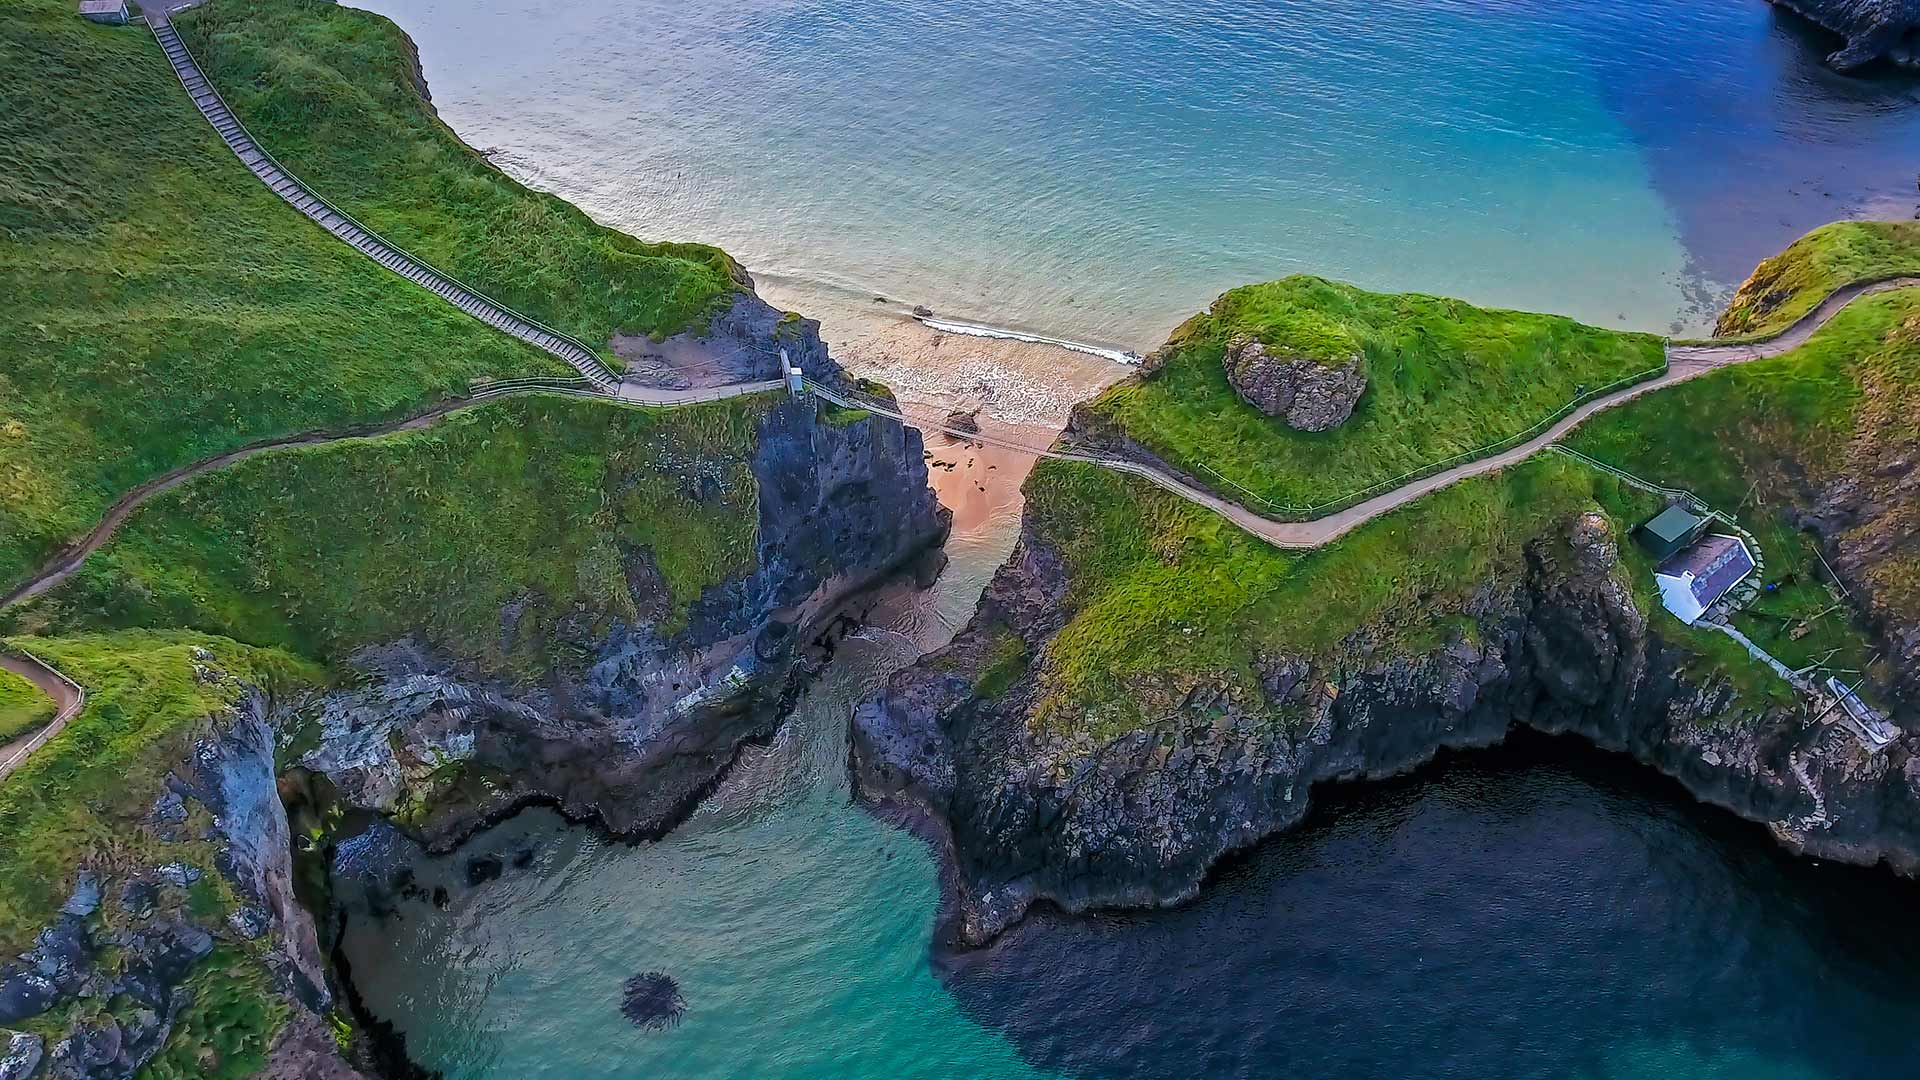 Carrick-a-Rede rope bridge connecting two cliffs near Ballintoy, County Antrim, Northern Ireland (© NordicMoonlight/iStock/Getty Images Plus)